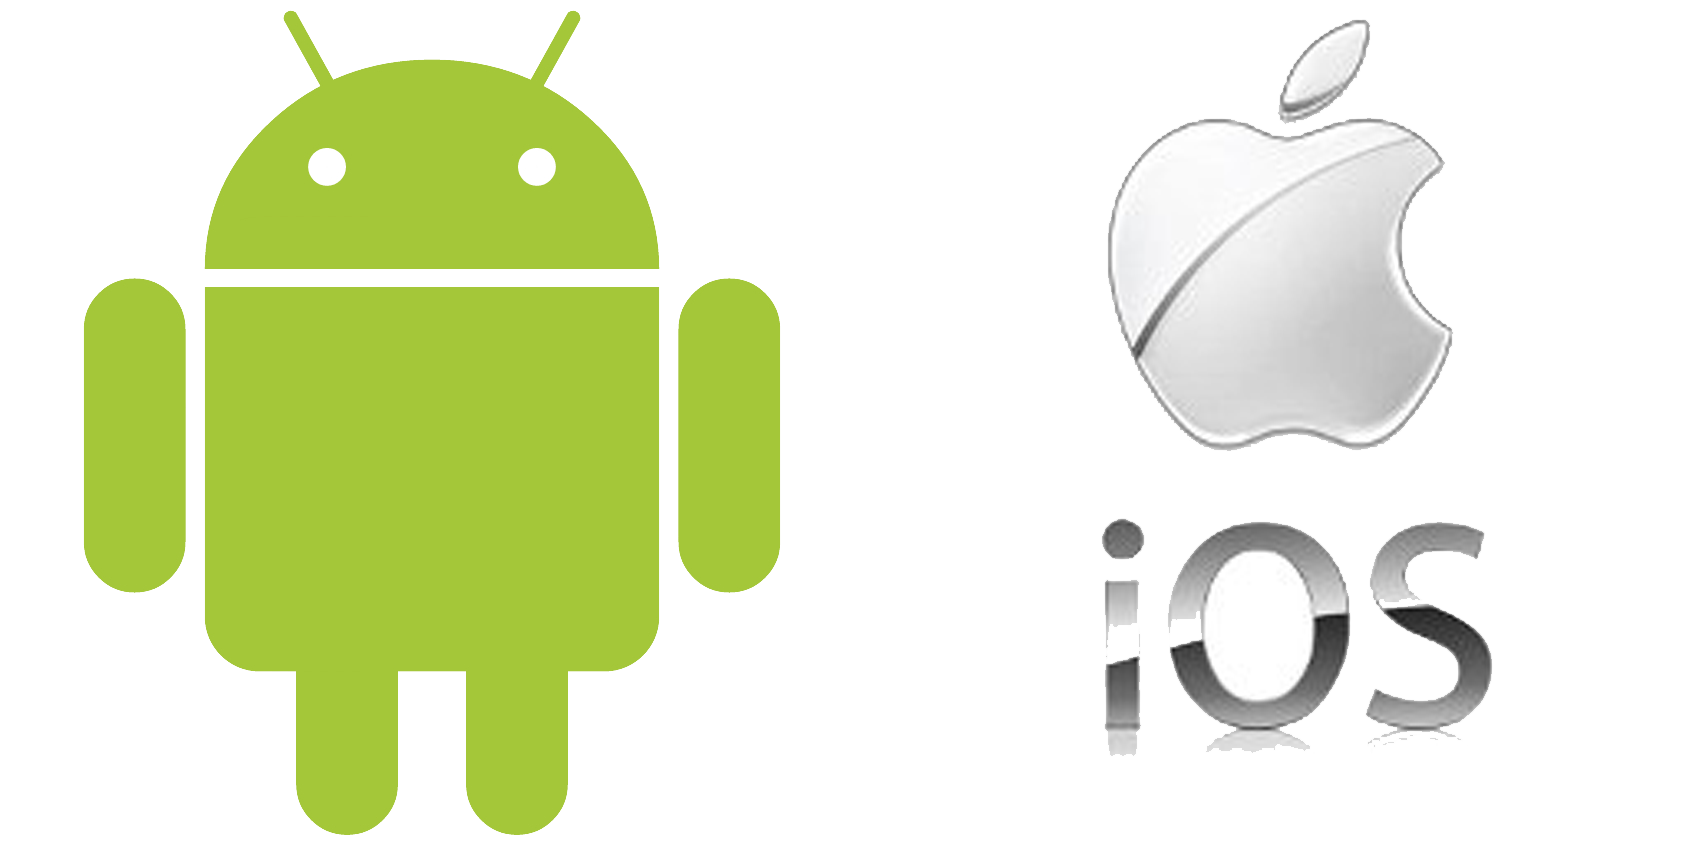 Android and iOS are more similar than we thought, if not twins